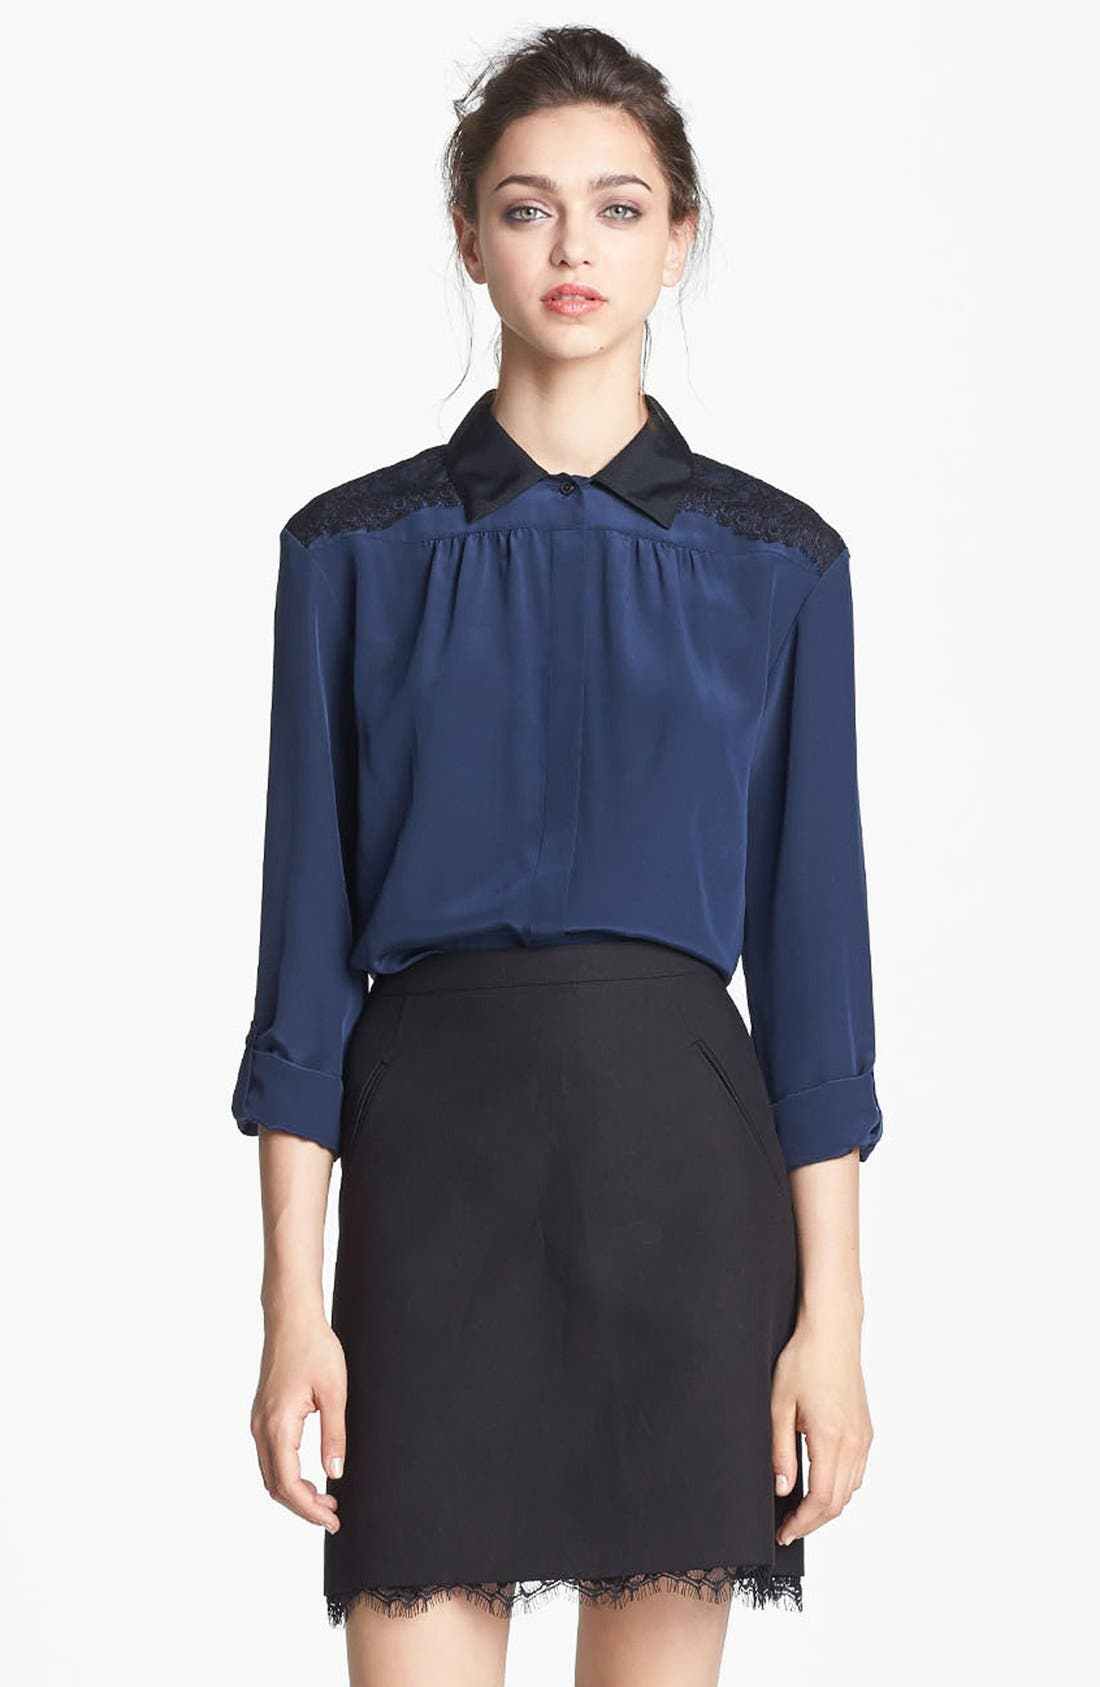 Alternate Image 1 Selected - Miss Wu Lace & Crêpe de Chine Blouse (Nordstrom Exclusive)